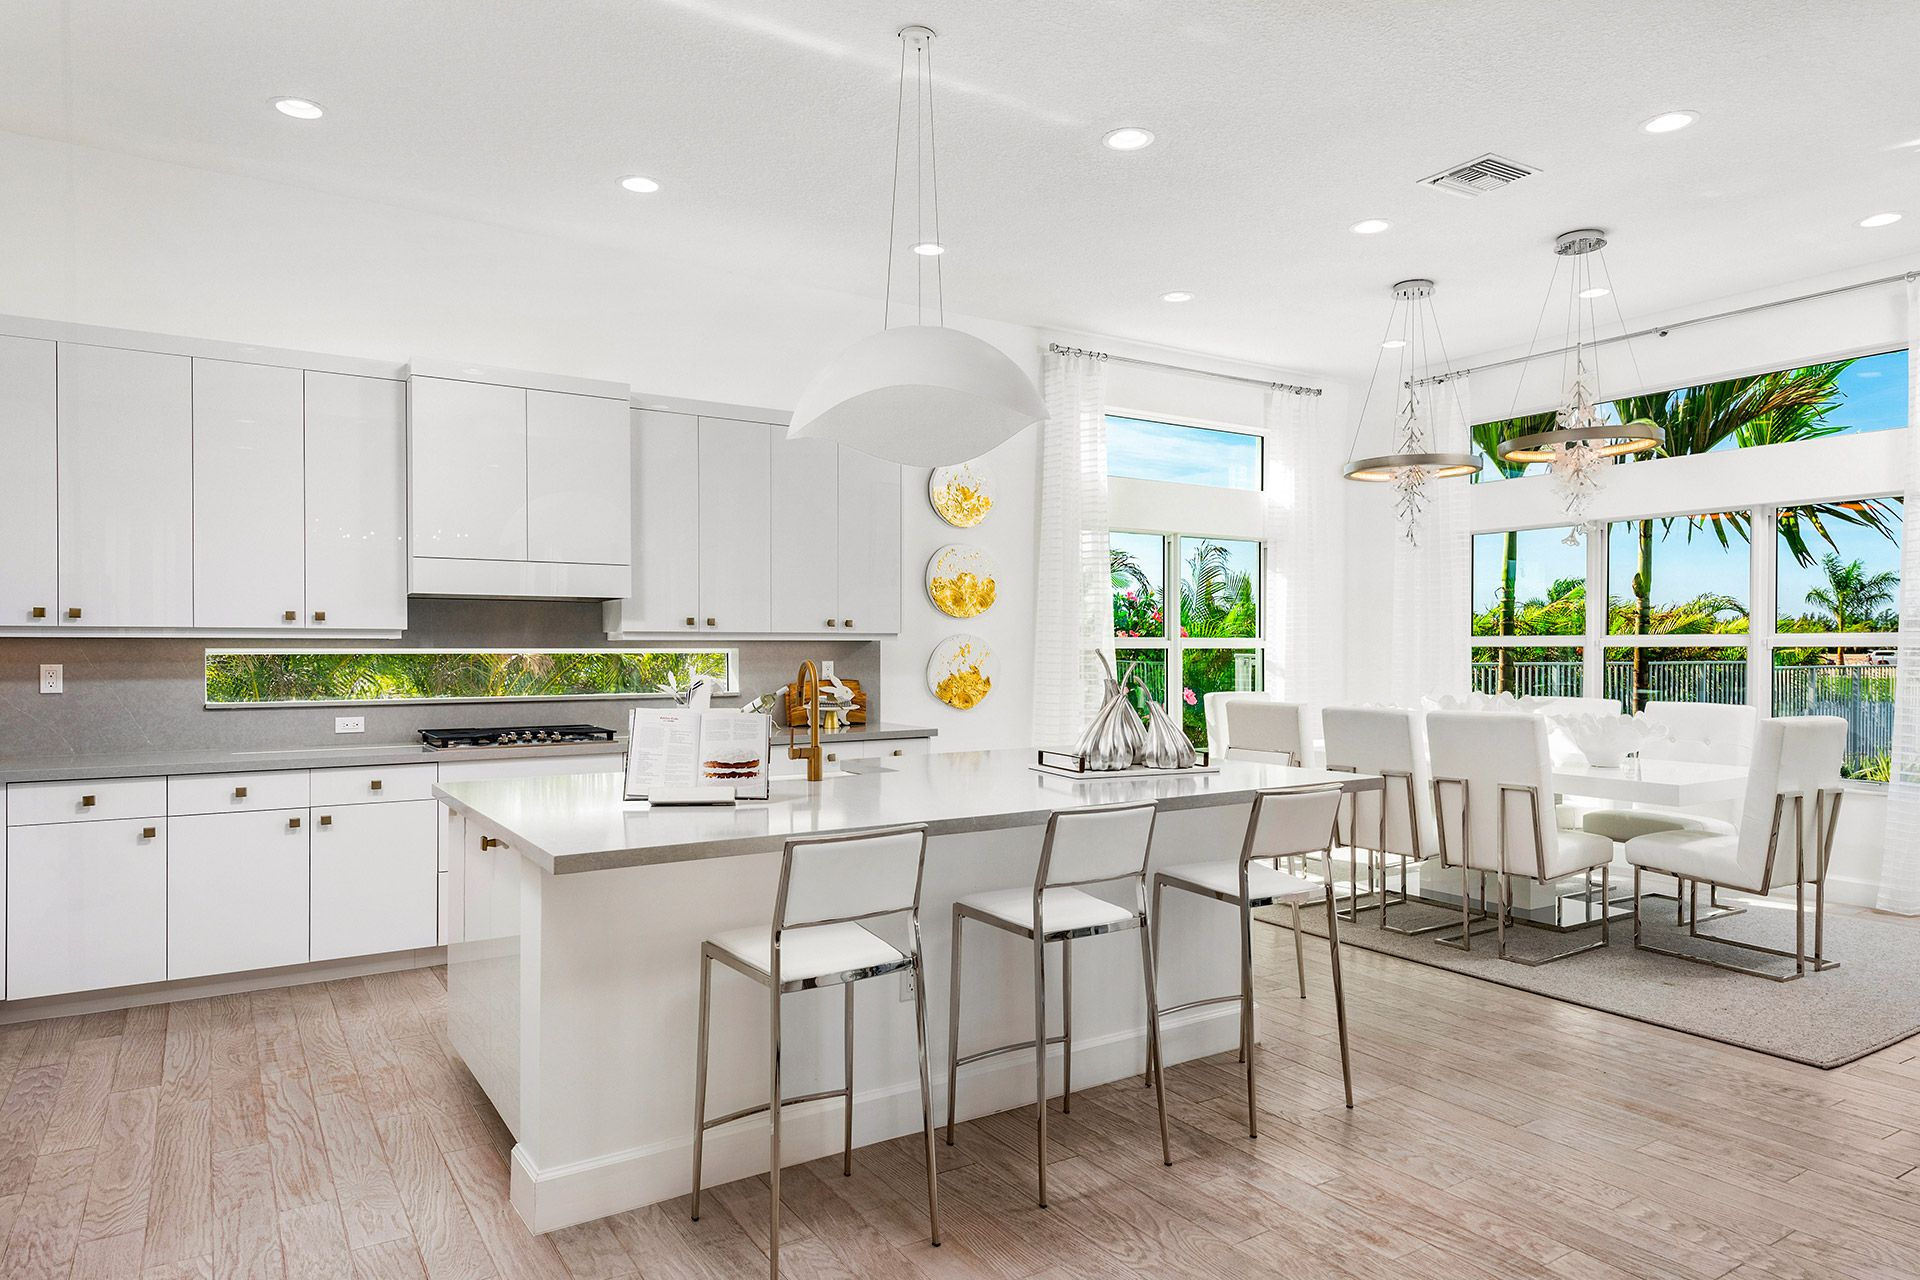 Kitchen featured in the Alexandra Grande By GL Homes in Palm Beach County, FL